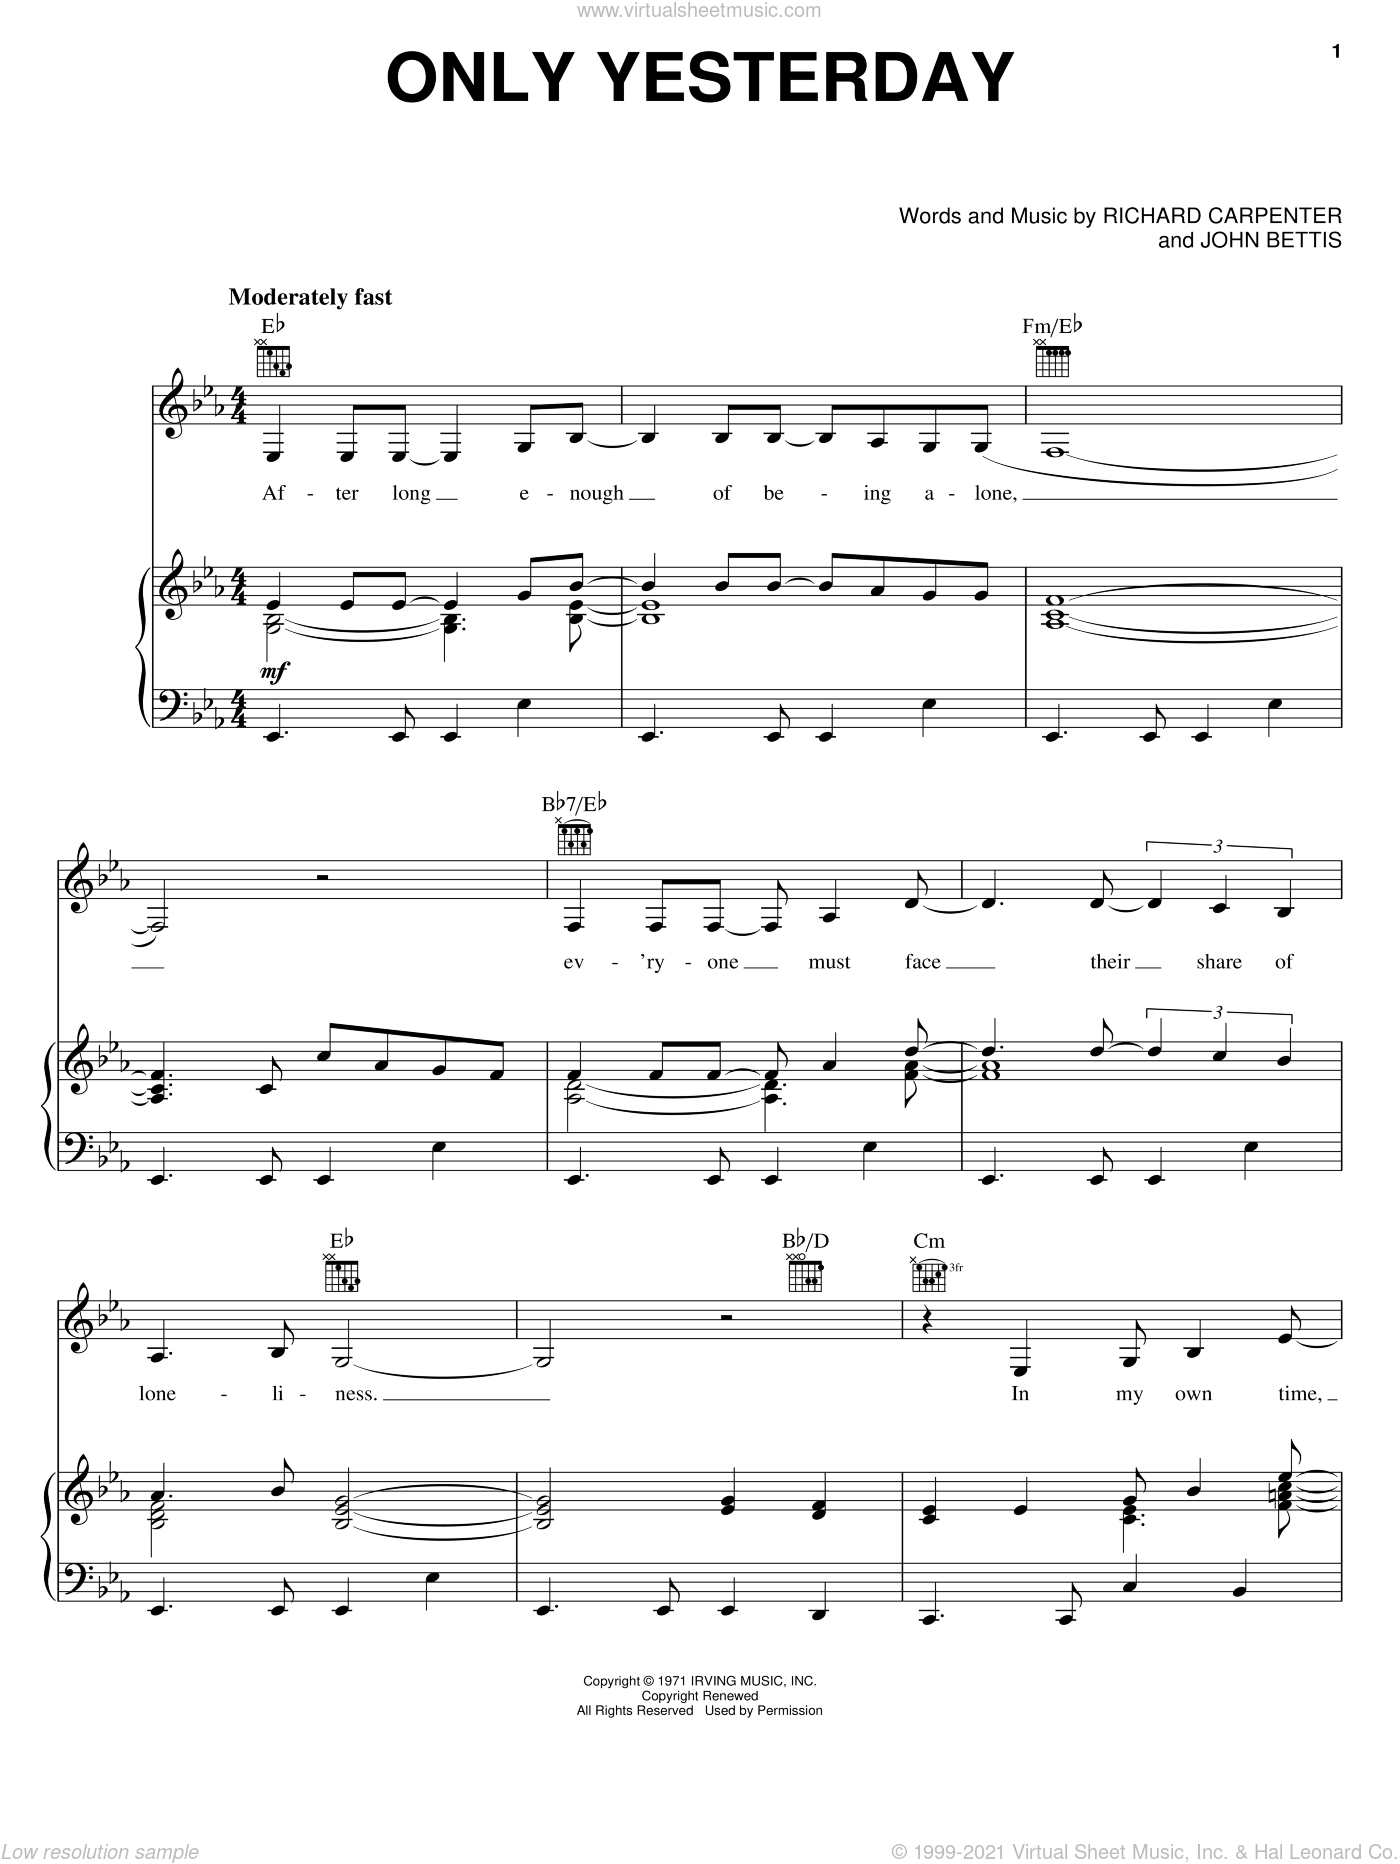 Only Yesterday sheet music for voice, piano or guitar by Richard Carpenter